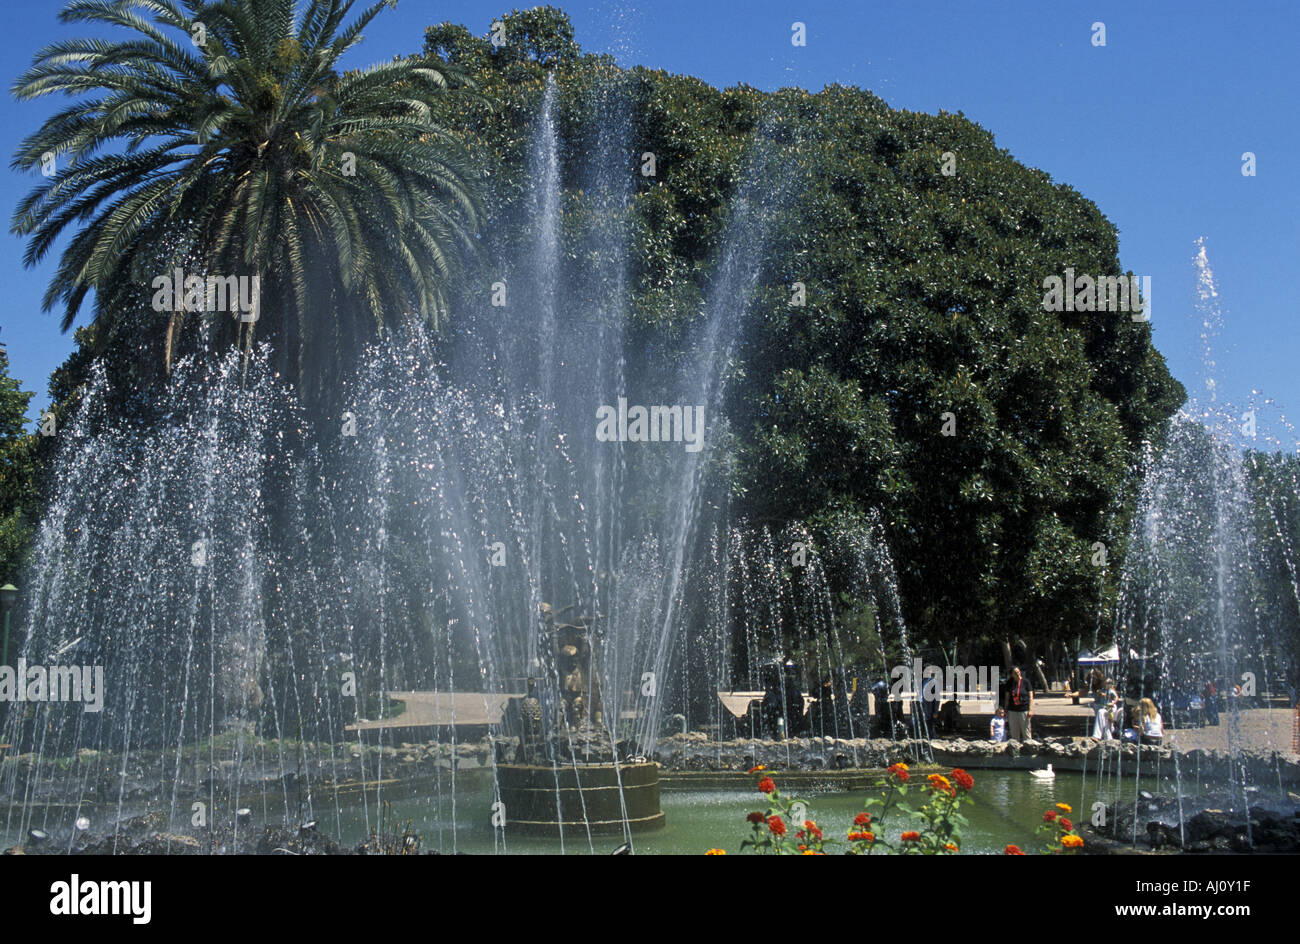 Giardino inglese palermo buy photos ap images detailview